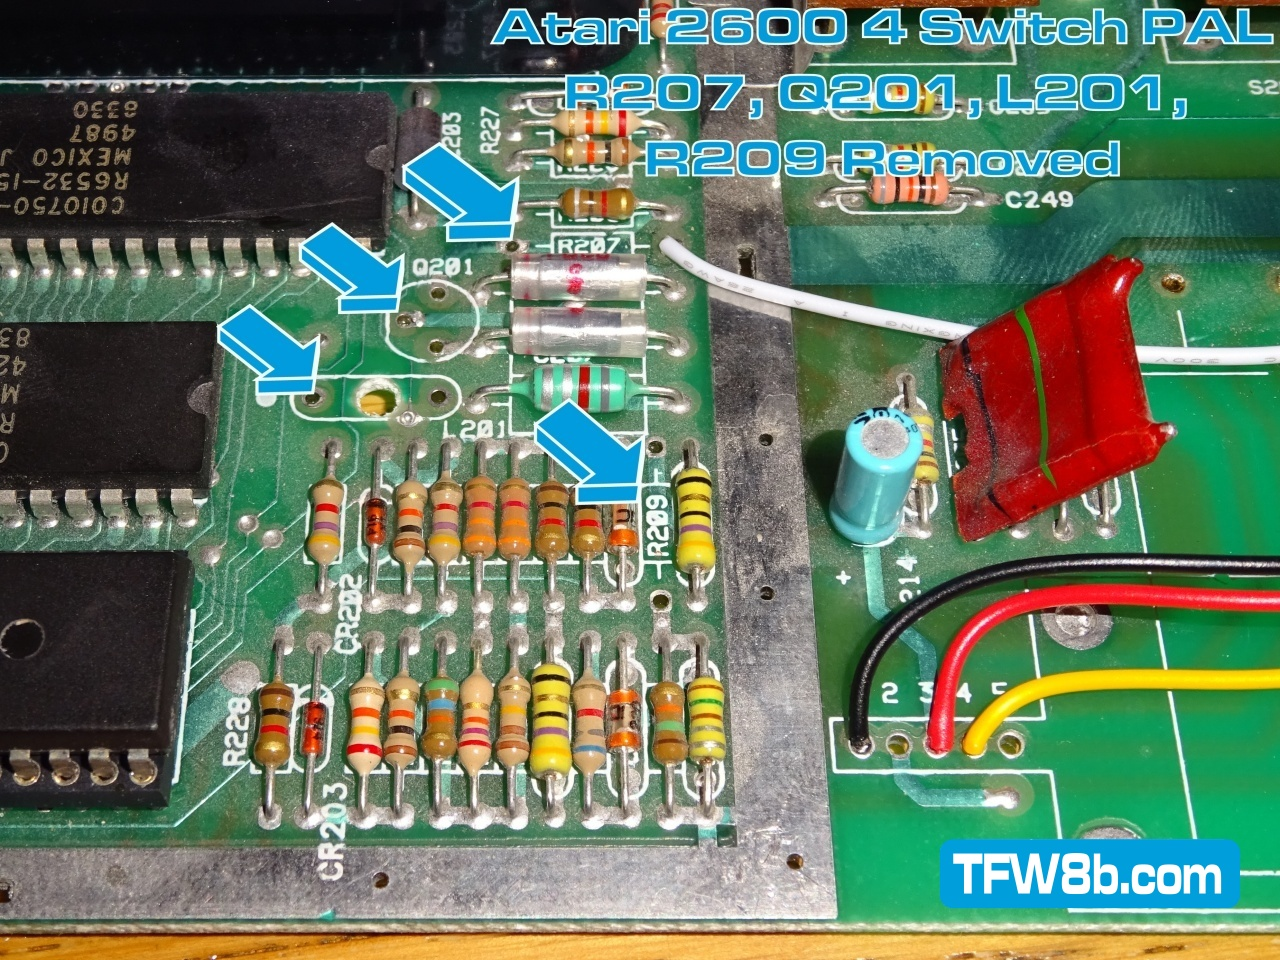 Atari 2600 4 switch PAL Composite Video Mod